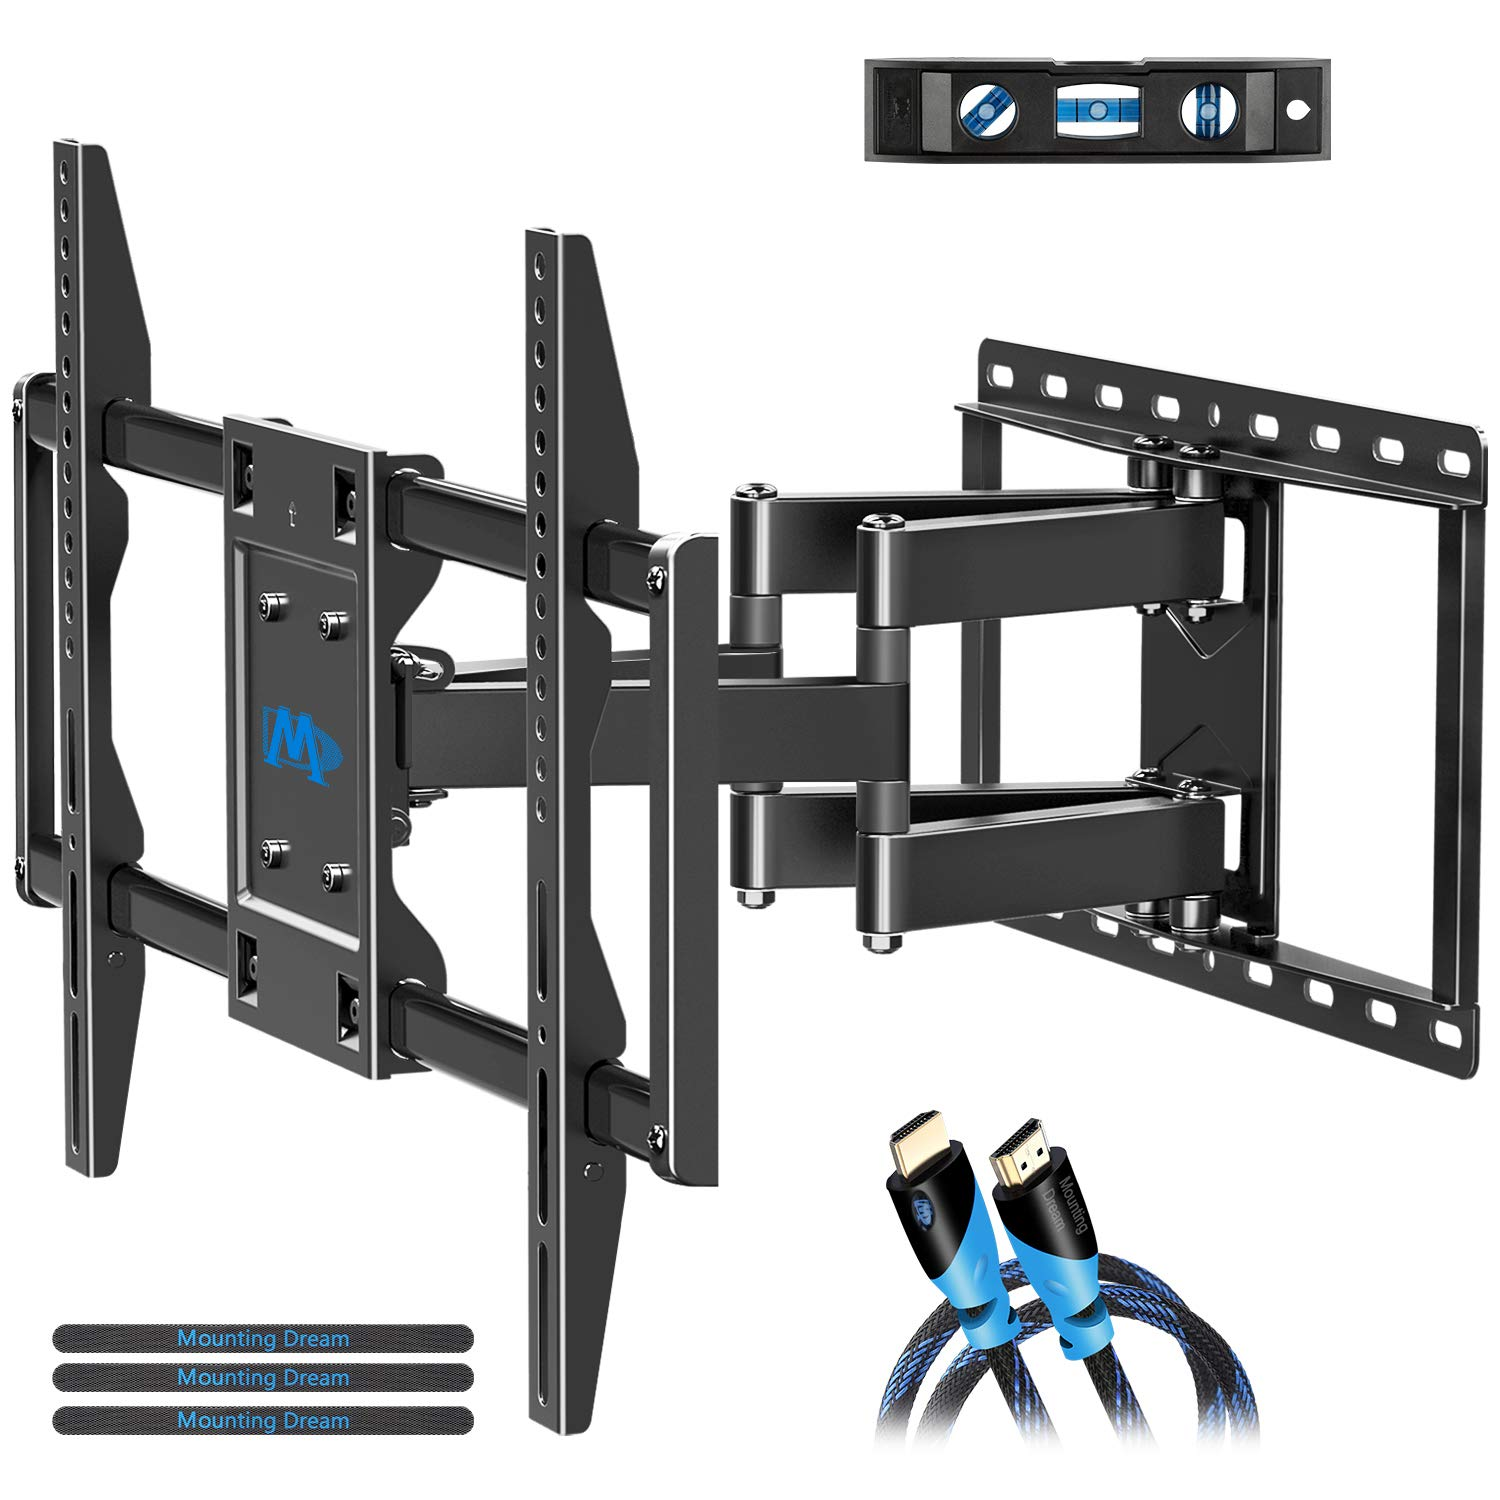 Mounting Dream TV Mount for Most 42-70 inch Flat Screen TVs Up to 100 lbs, Full Motion TV Wall Mount with Swivel Articulating 6 Arms, TV Wall Mounts Fit 12-16'' Wood Studs, Max VESA 600x400mm by Mounting Dream